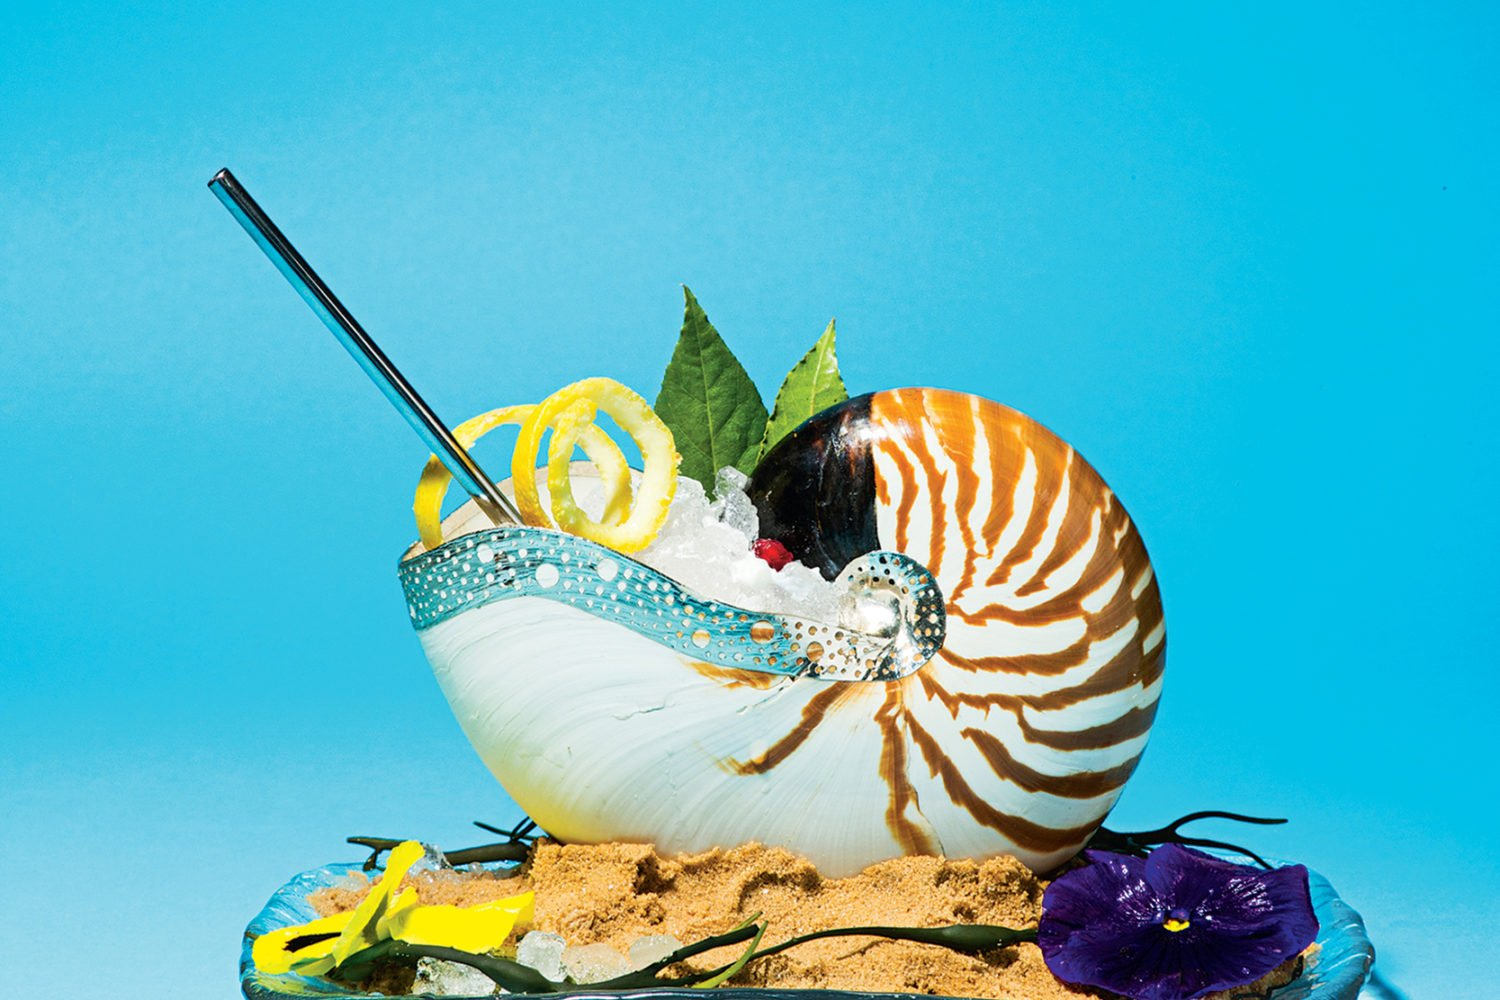 Tiger nautilus shell in a bed of sand for gin-and-tonics at Del Mar. Photograph by Scott Suchman.